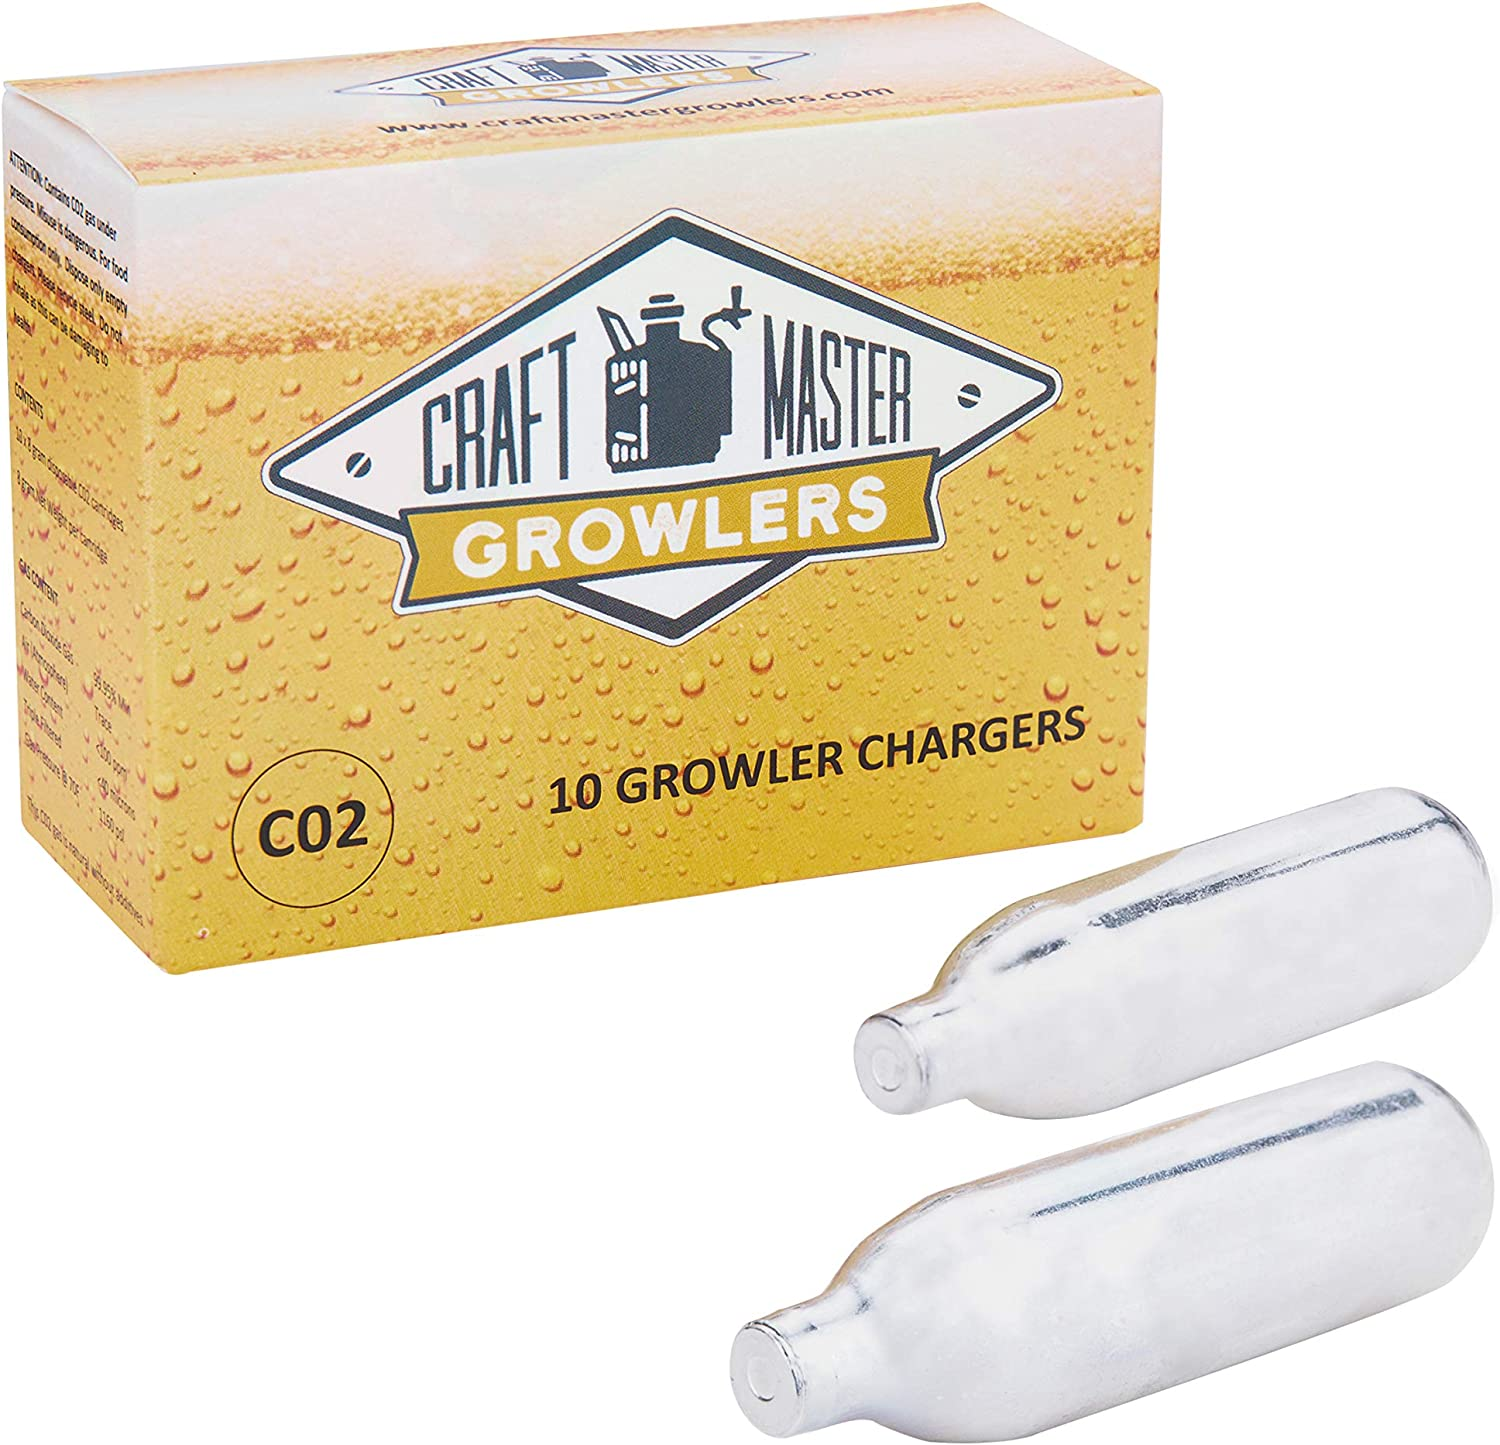 Food Grade CO2 Cartridges For CO2 Growlers - Non-Threaded 10 x 8 gram CO2 Cartridges